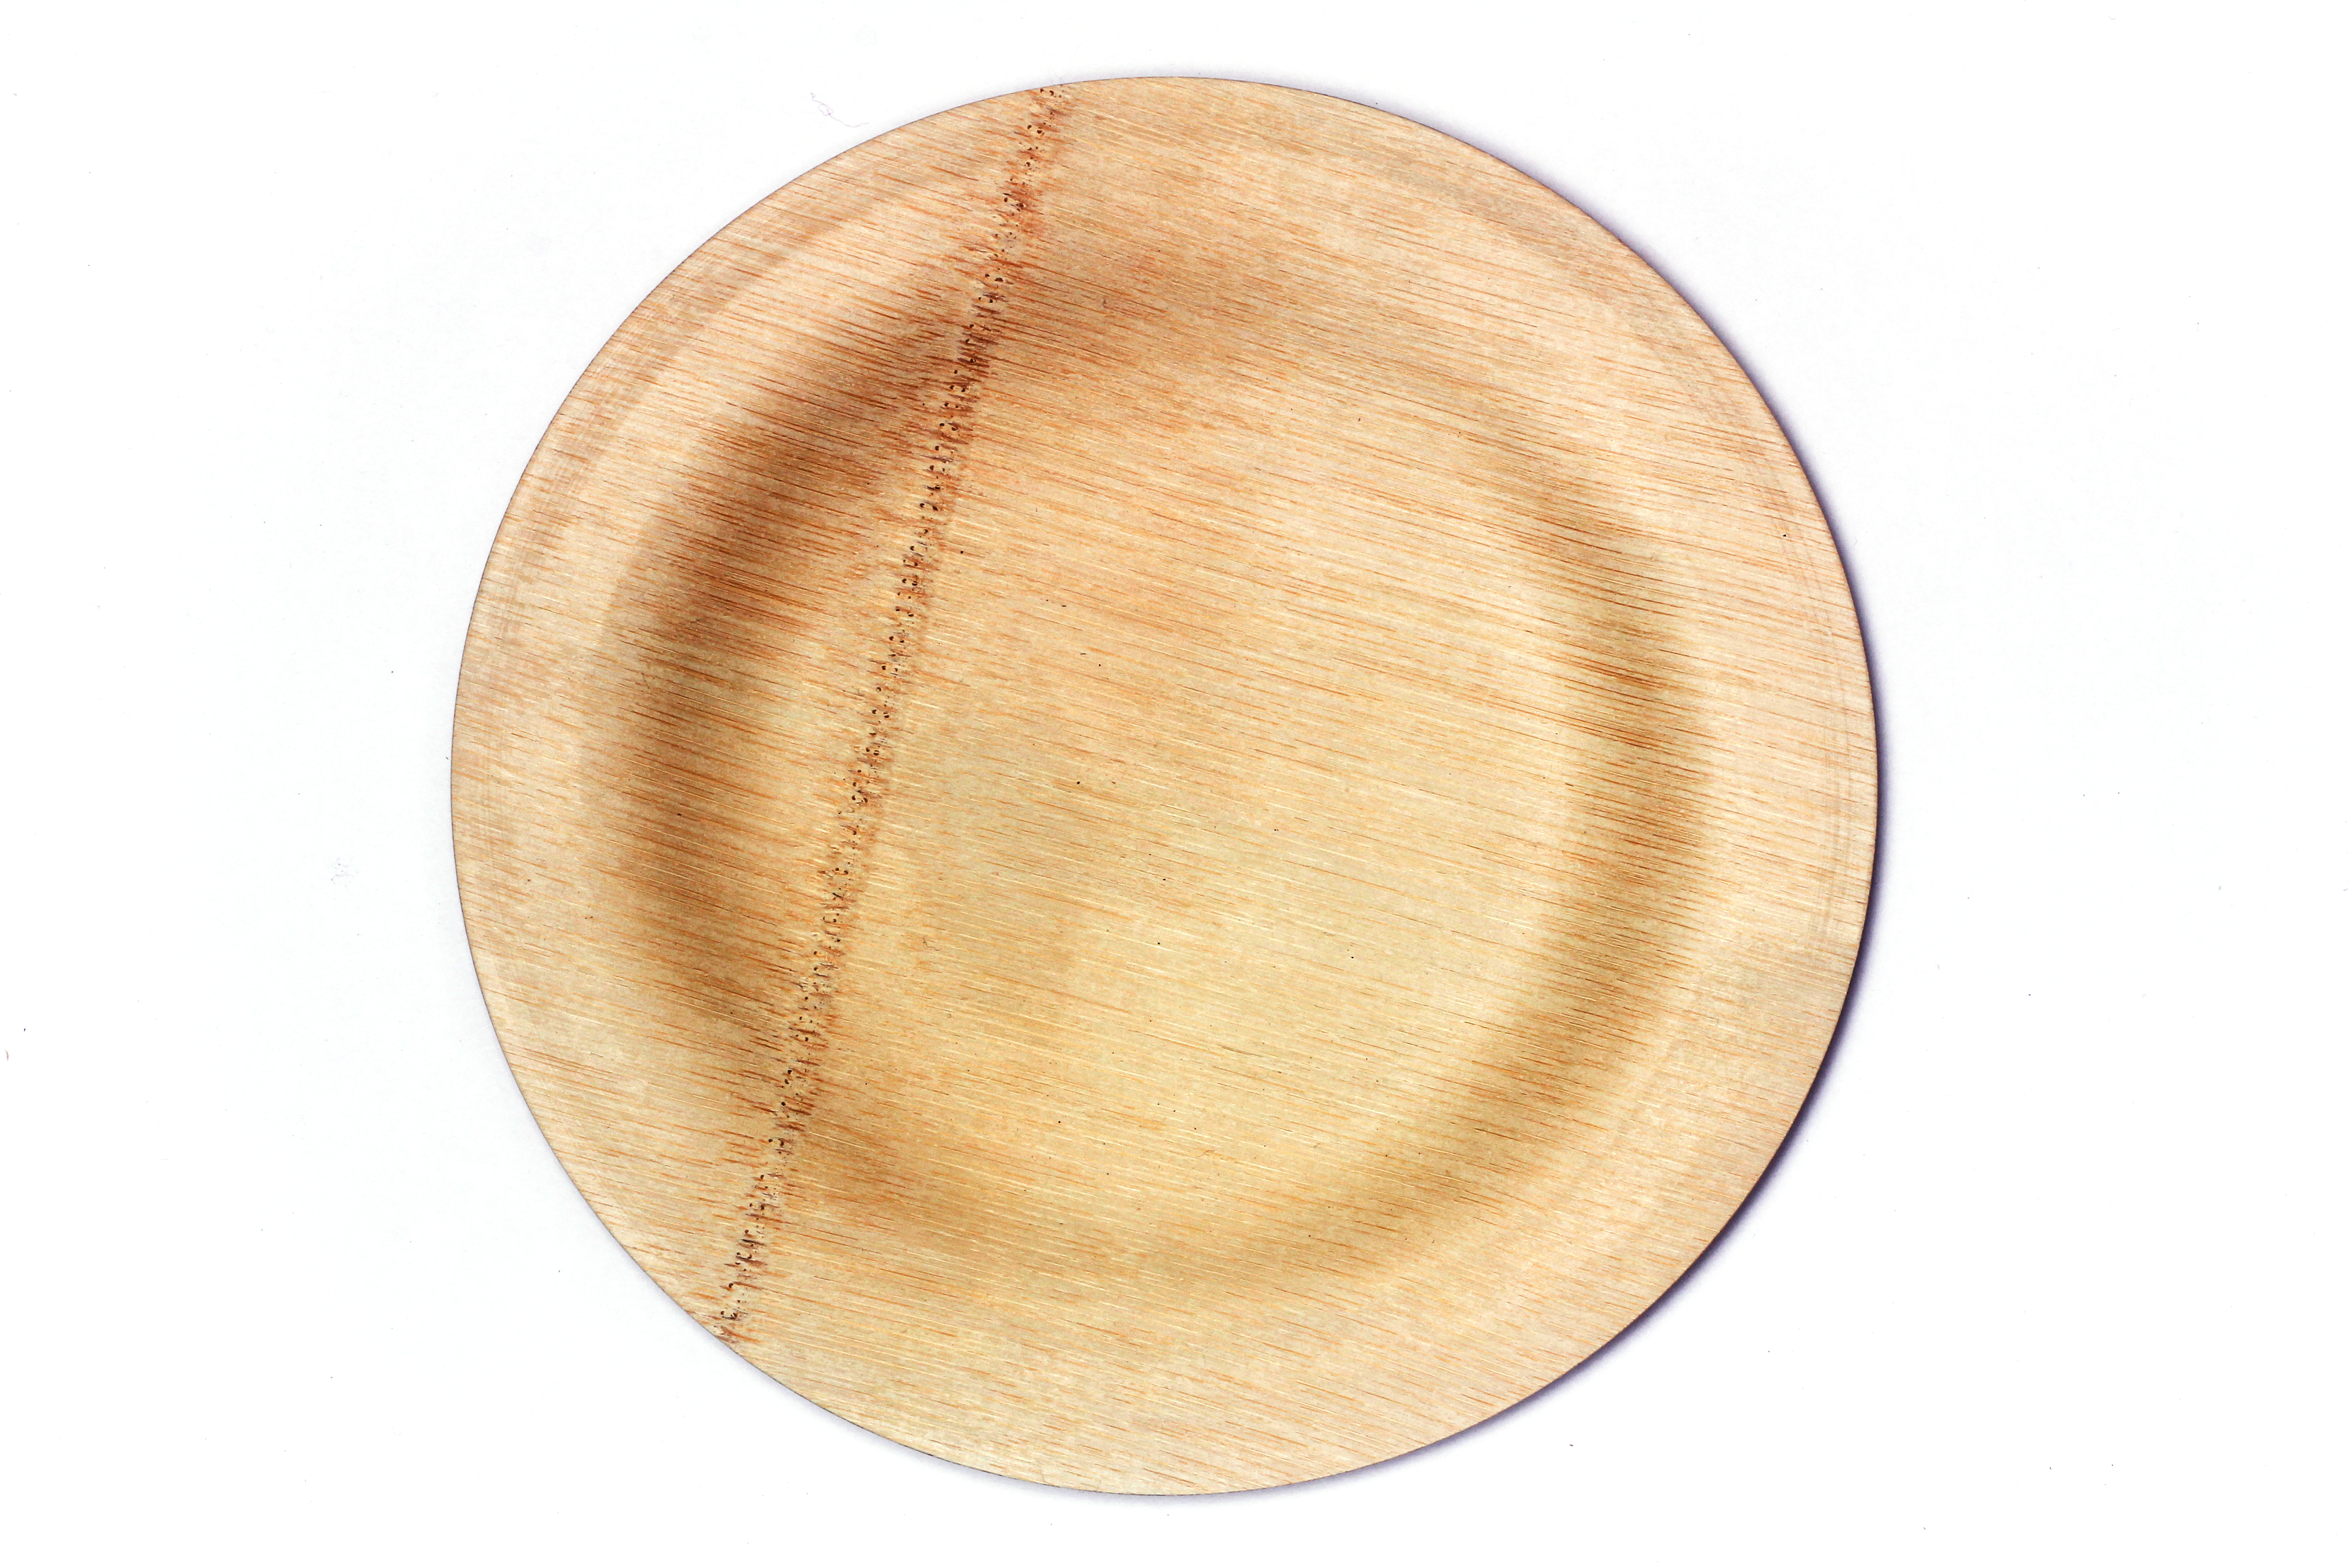 Enchanting bamboo plates with Core bamboo plates for serveware ideas